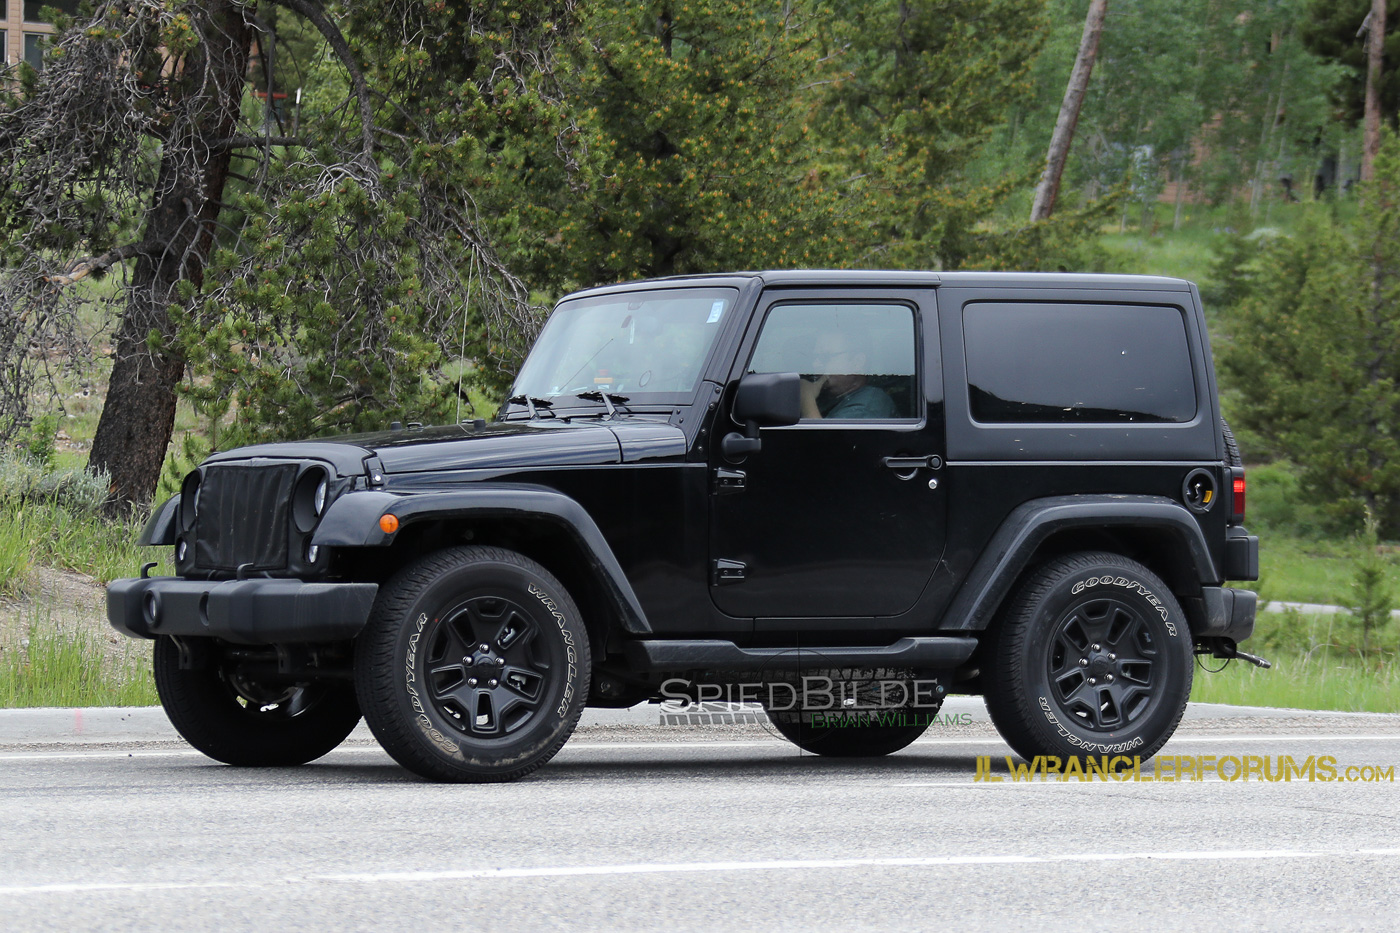 Jeep Wrangler Pickup Truck >> 2018 Jeep Wrangler (JL) Mule Confirms Six-Speed Manual! | 2018+ Jeep Wrangler Forums (JL / JT ...